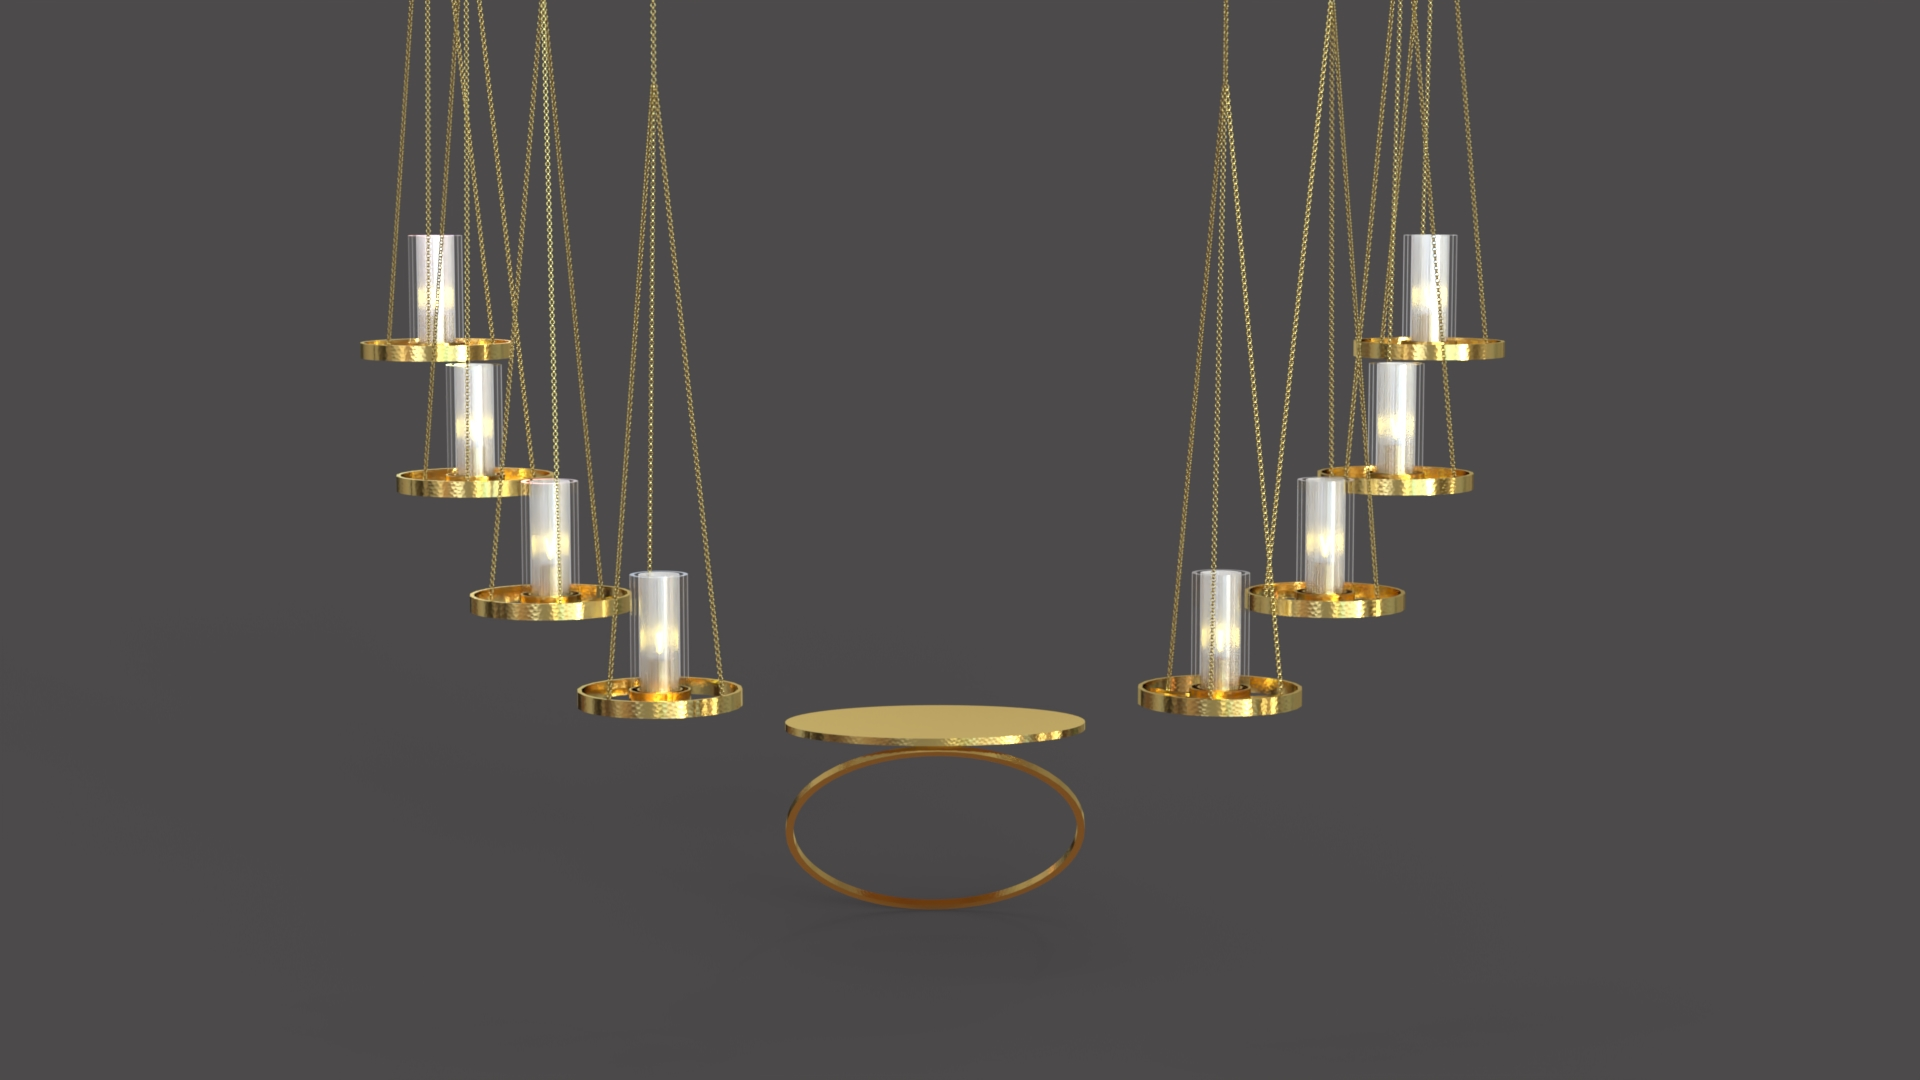 lampes votives viz_Camera_SOLIDWORKS Viewport